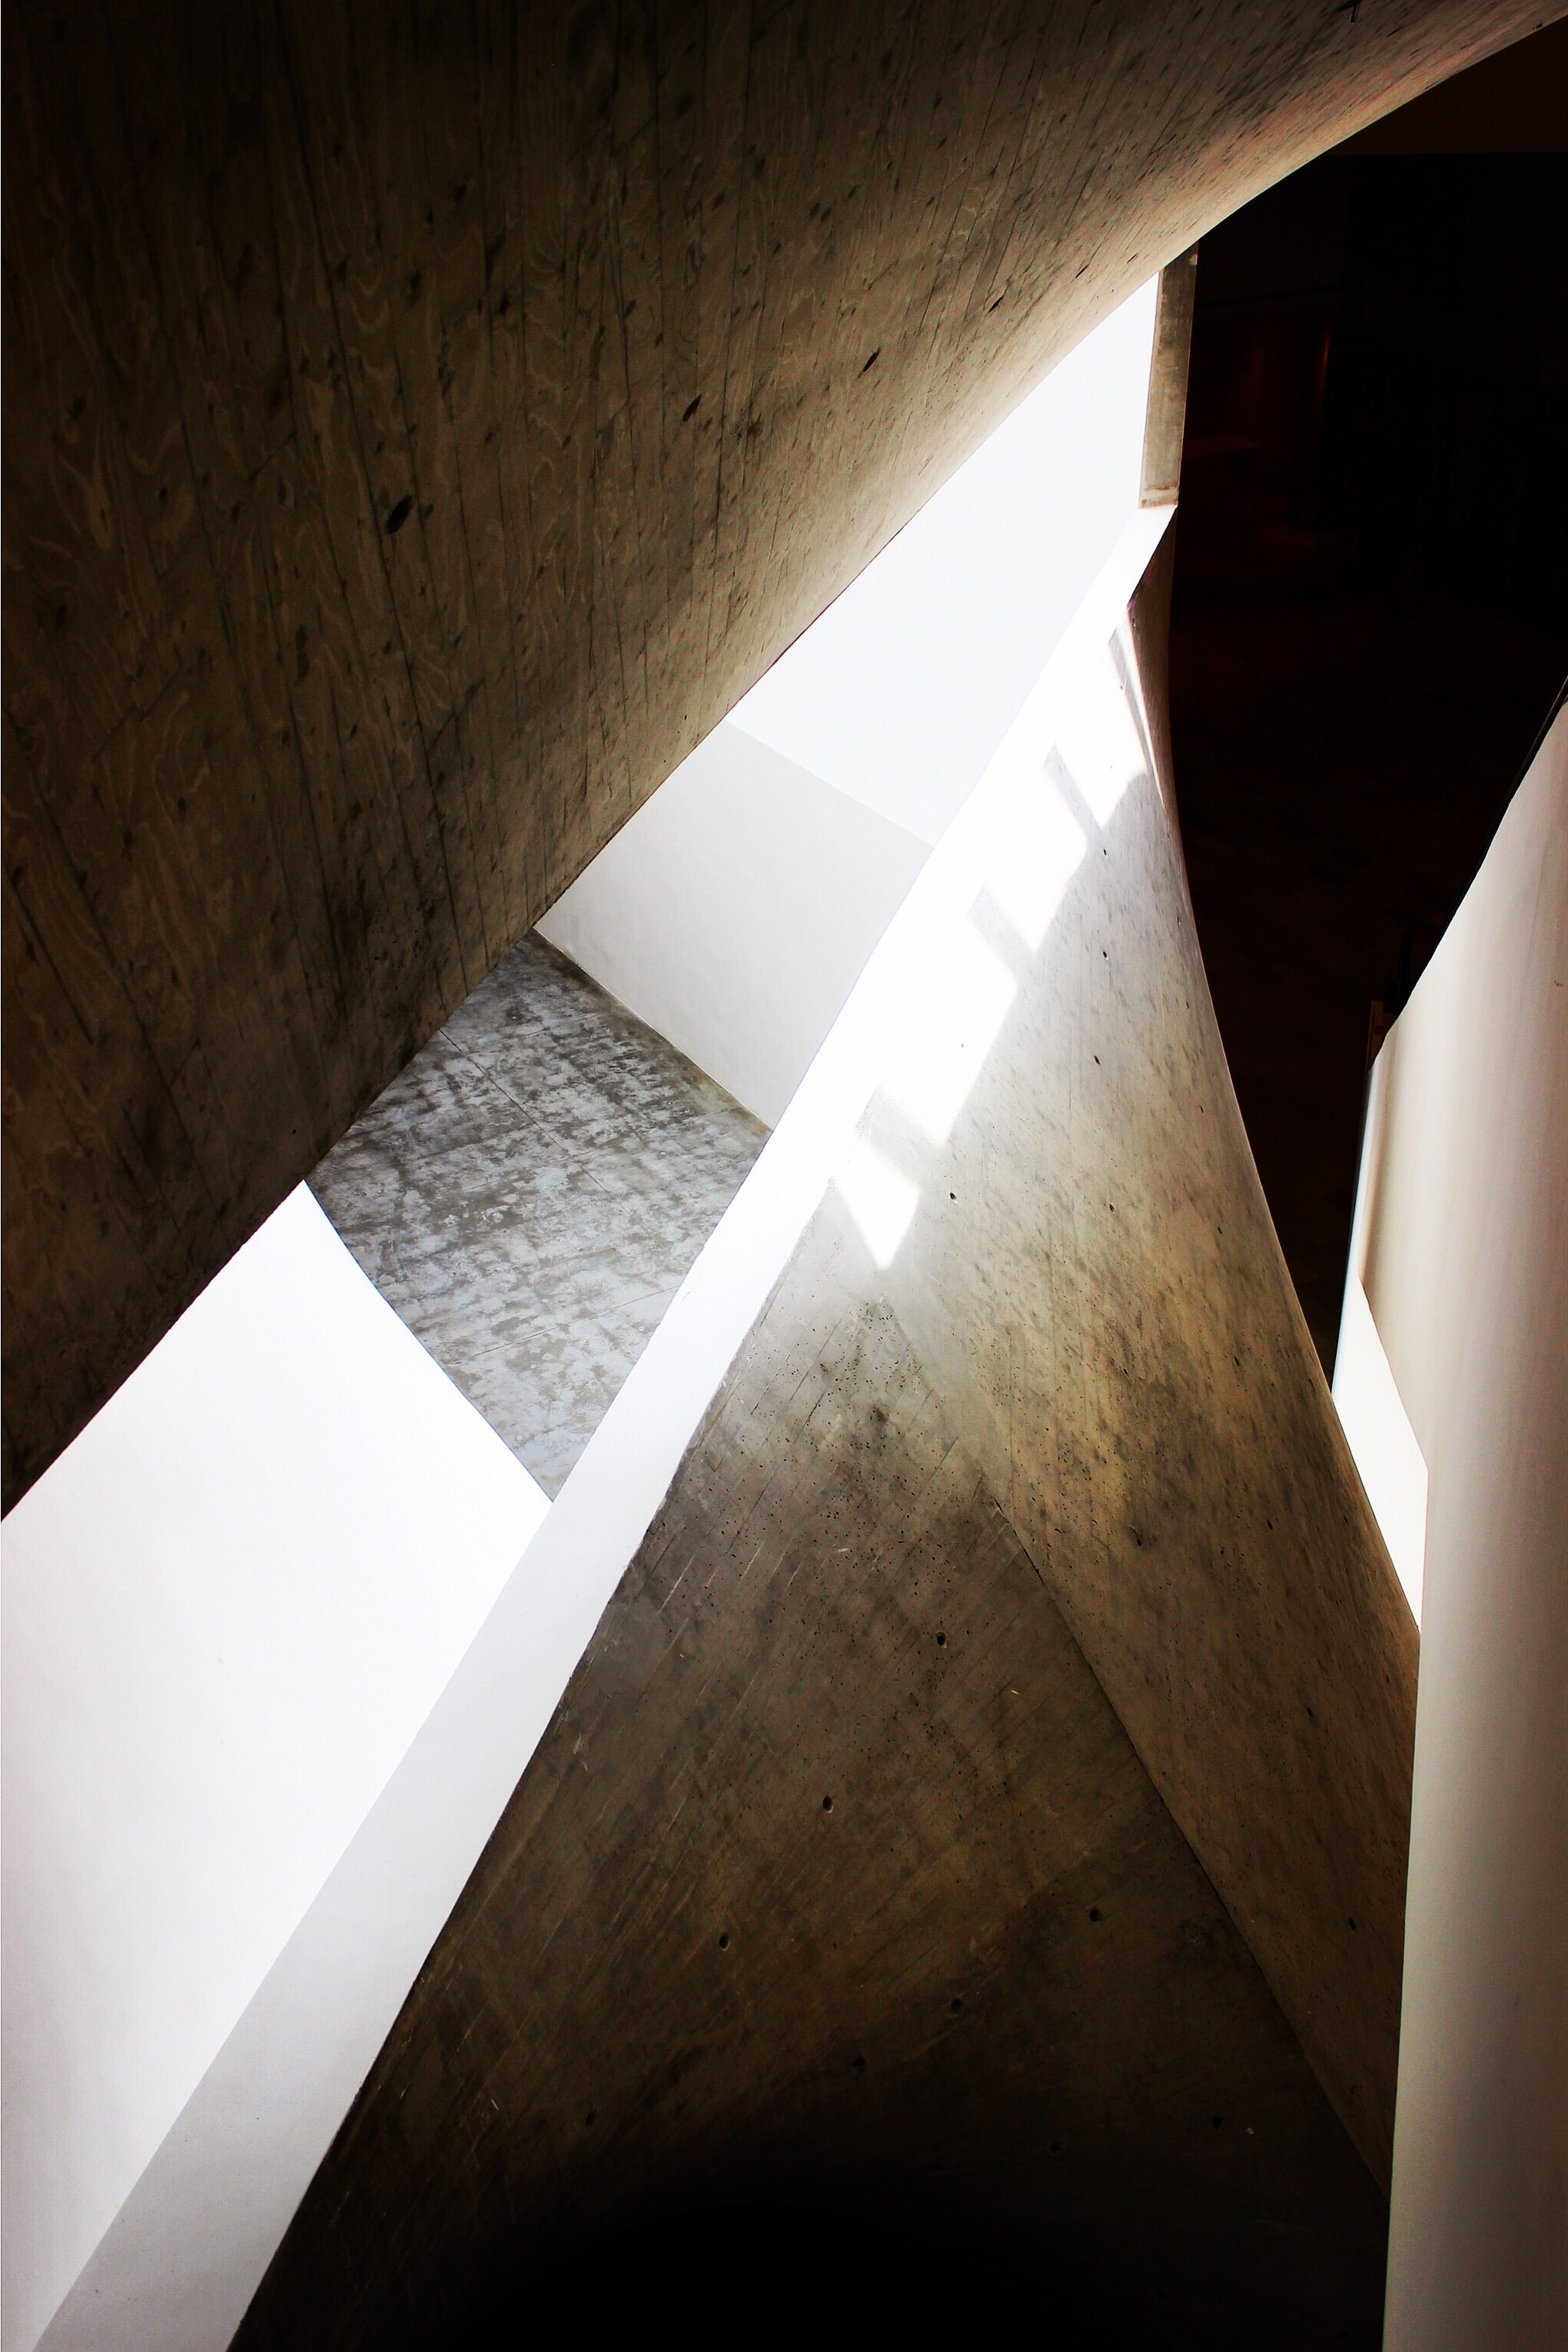 Edges of rocky architectural walls and designs reflecting light and casing shadows